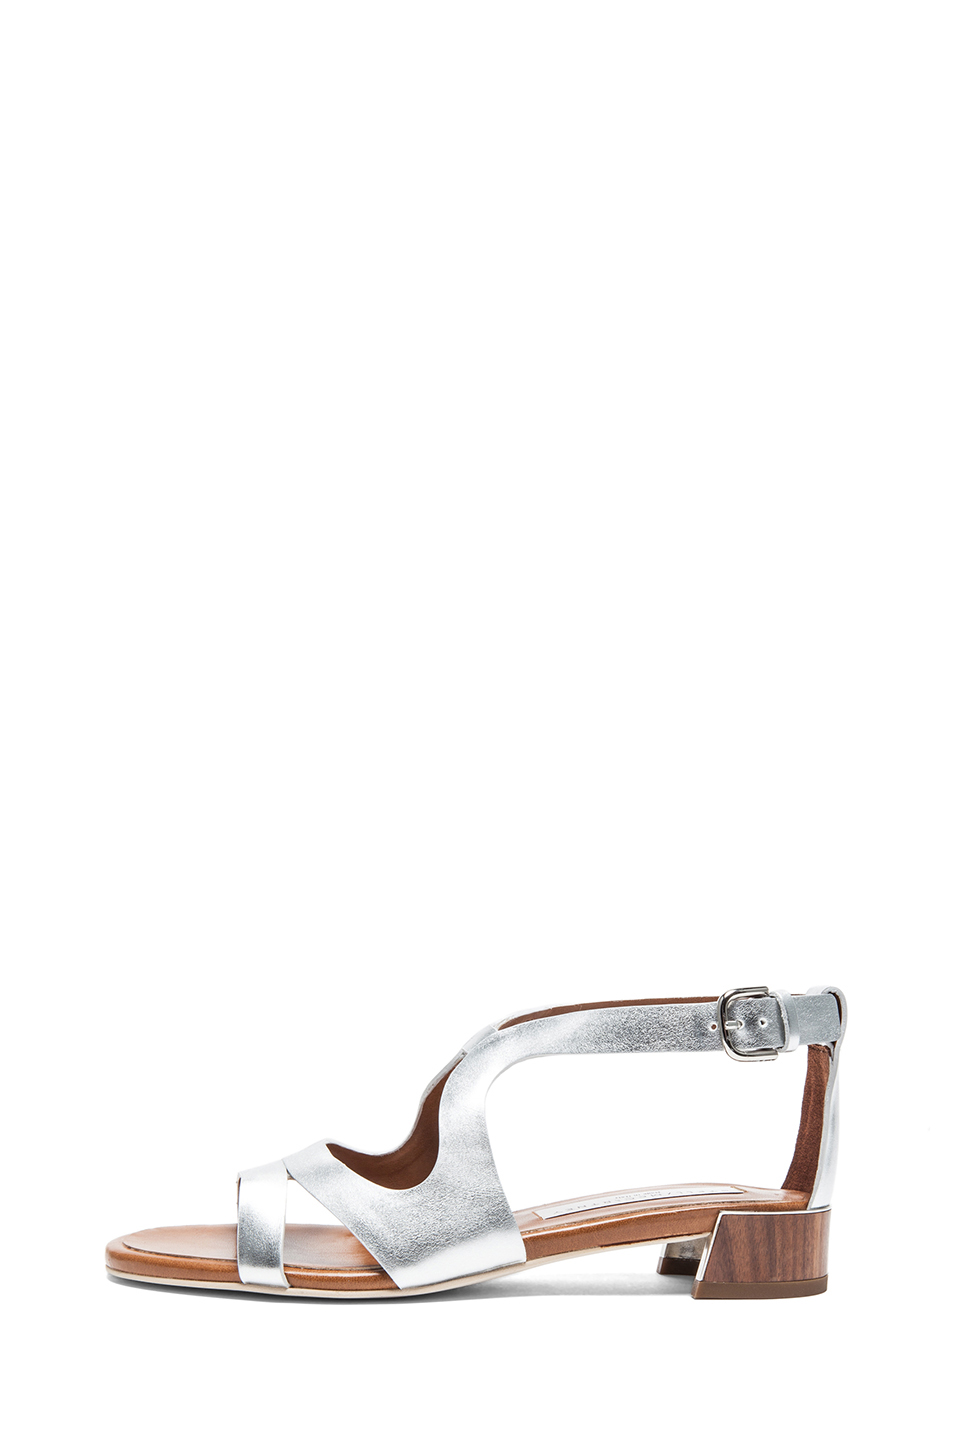 Stella McCartney|Faux Leather Flat Sandal in Silver